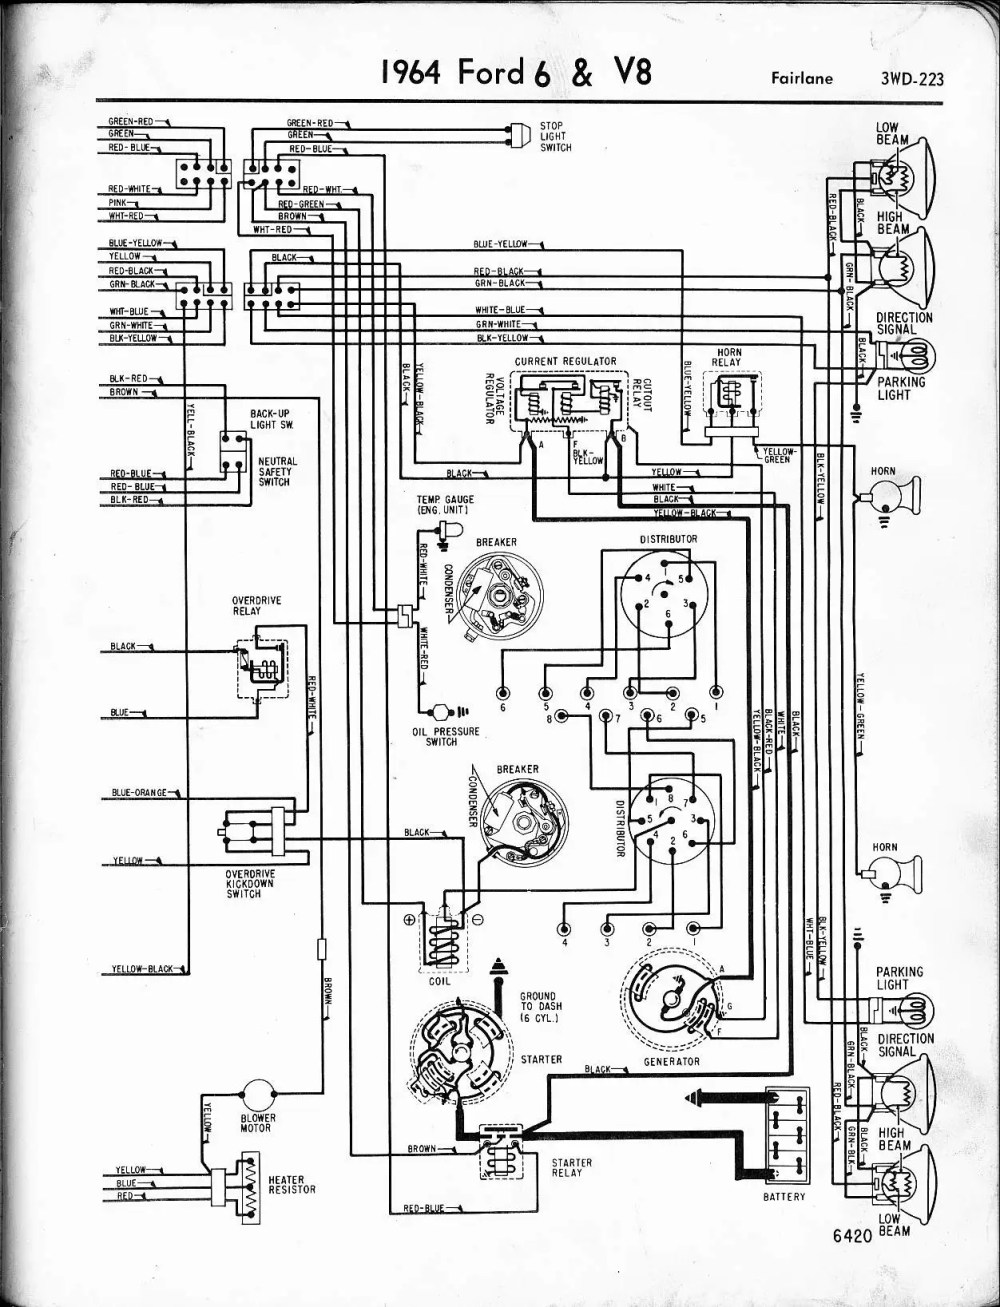 medium resolution of 57 65 ford wiring diagrams 1964 ford galaxie generator wiring diagram 1964 6 v8 fairlane